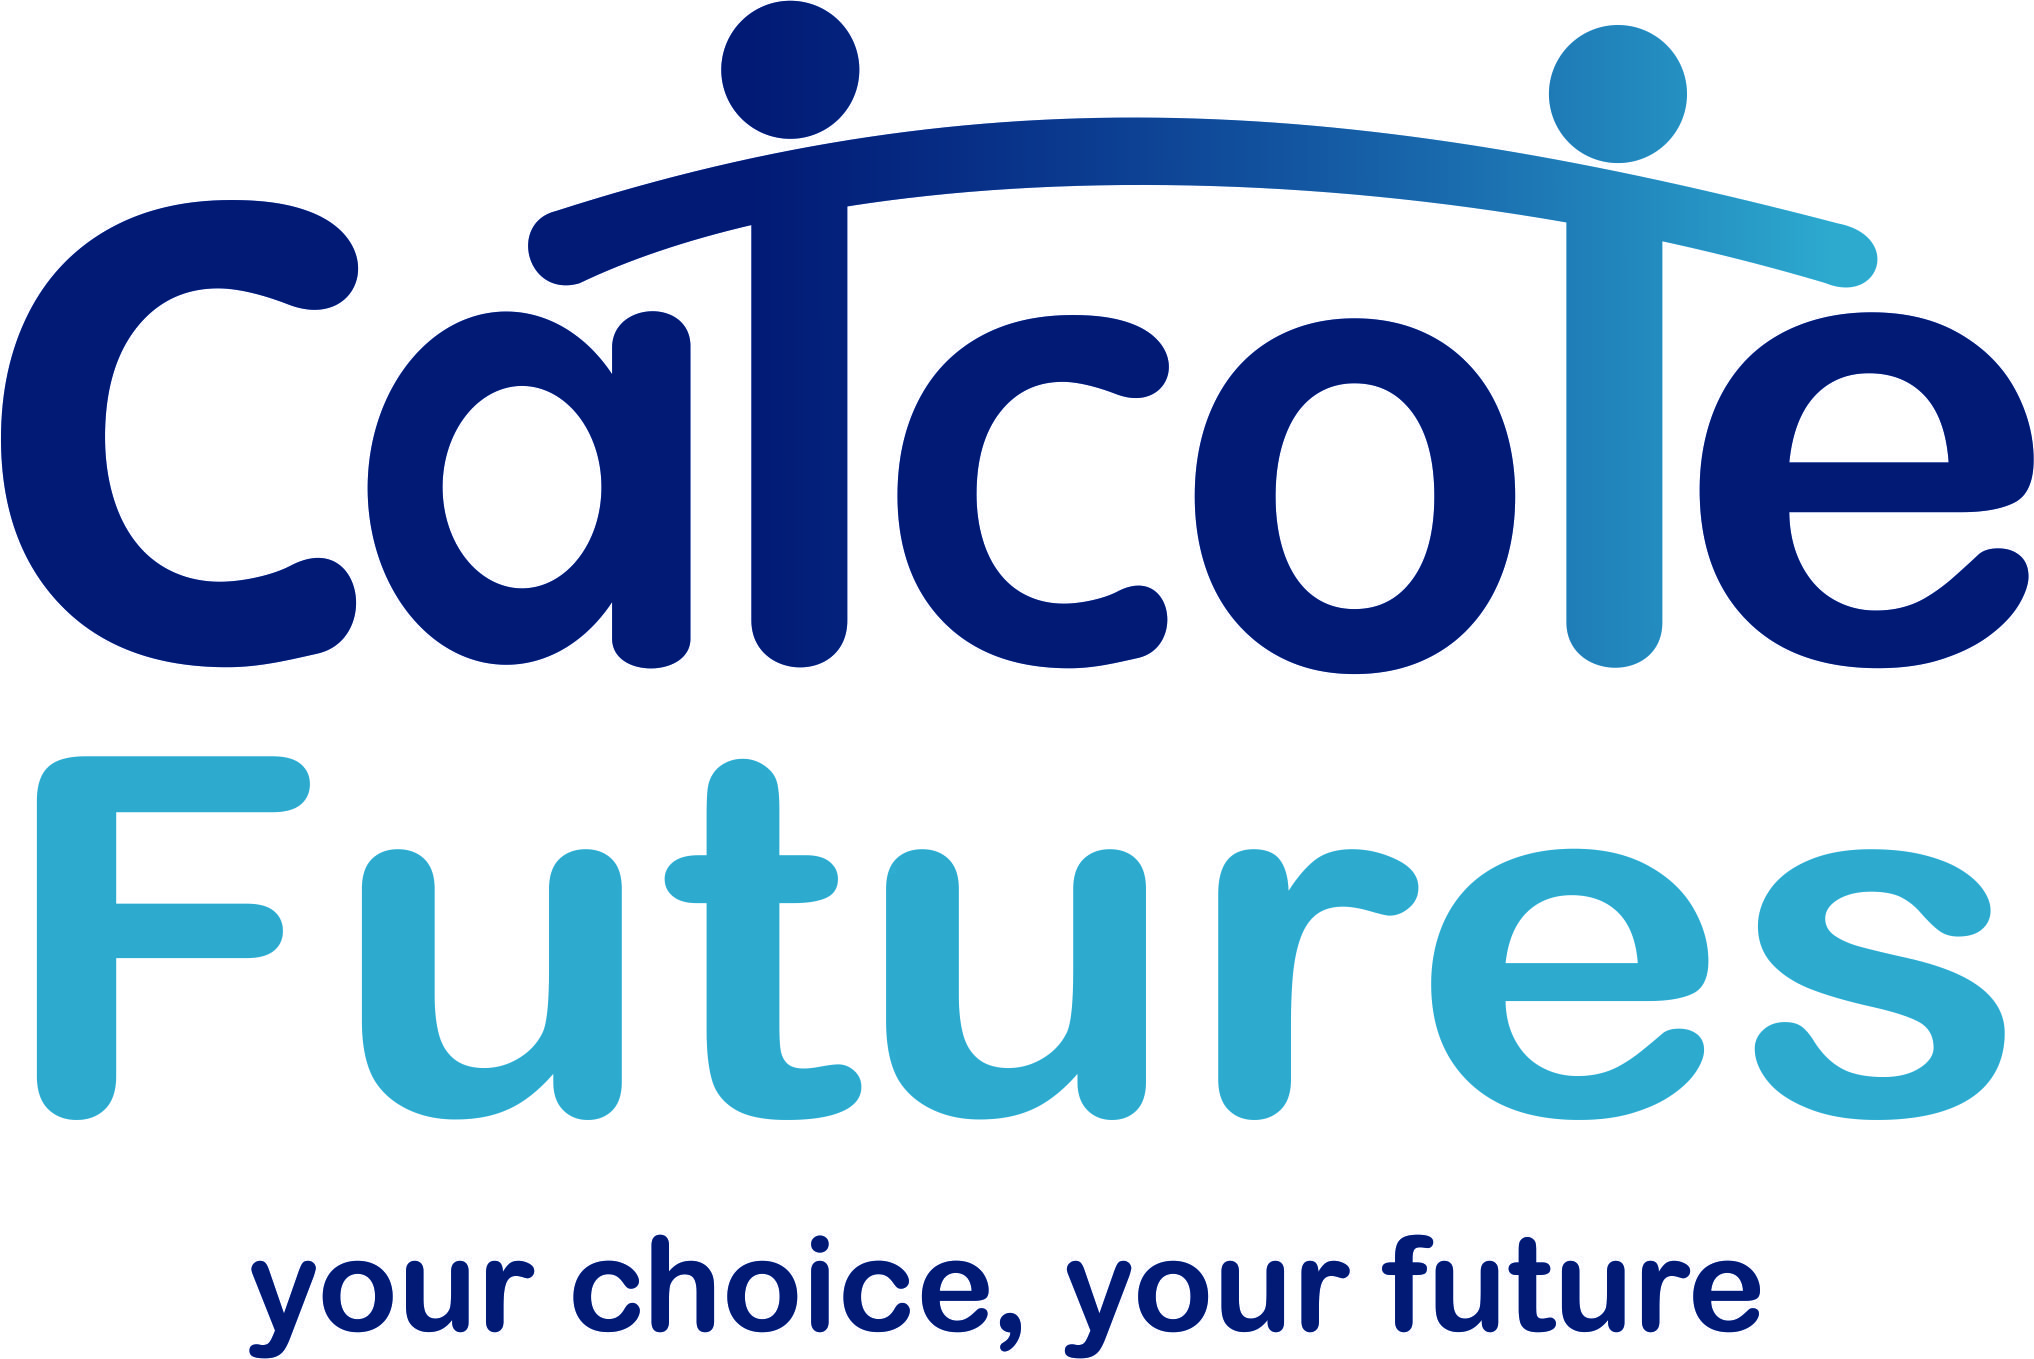 The logo of Catcote Futures Learning & Skills Centre